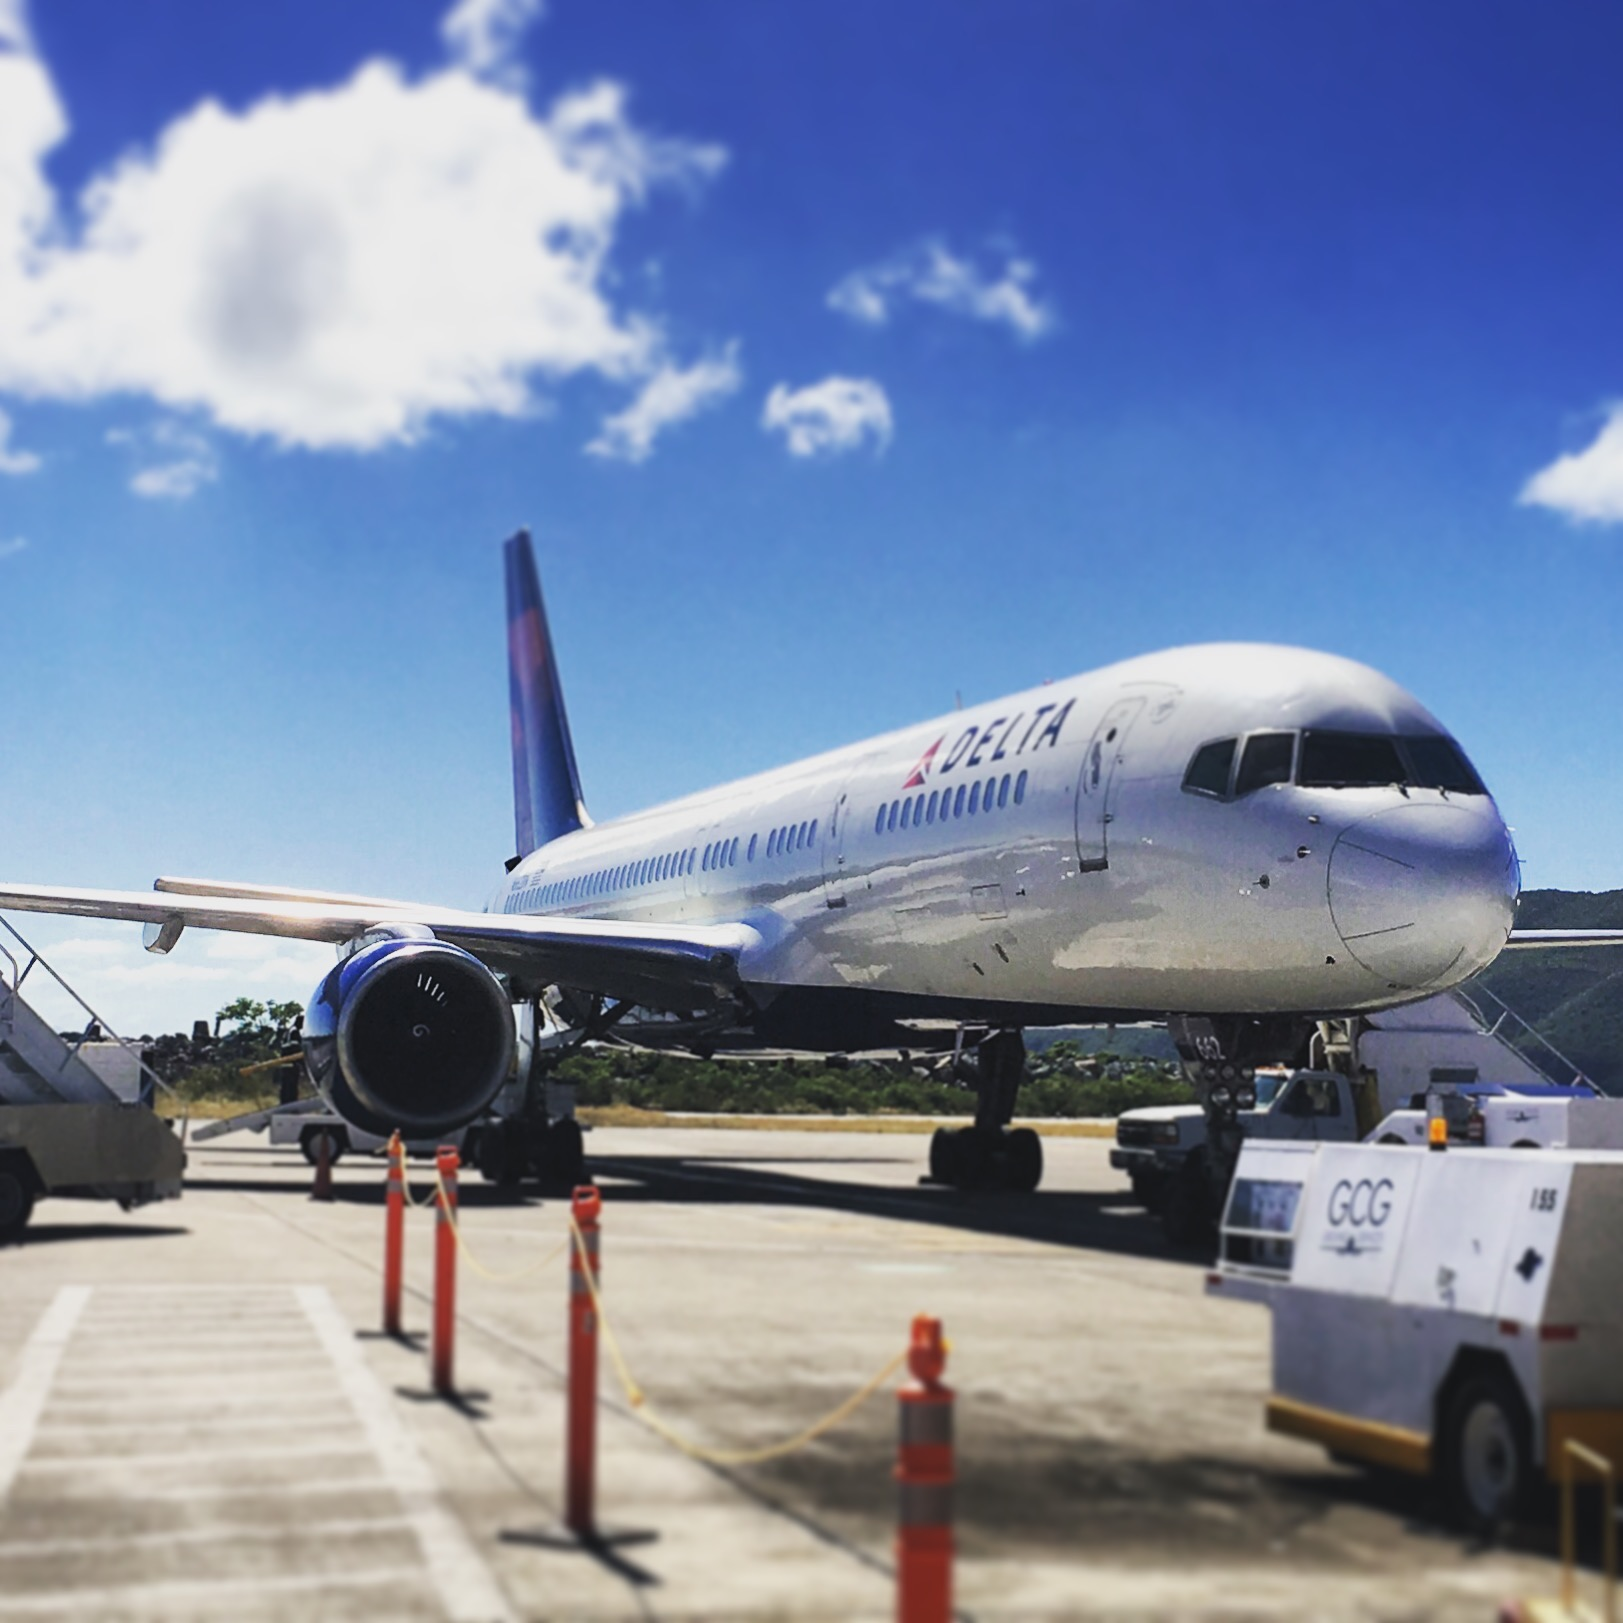 """The """"big three"""" U.S. """"legacy"""" airlines (American, Delta, United) are some of the largest operators of 757s today. Delta (shown here) maintains the world's largest fleet. Southwest, jetBlue, and Alaska Airlines operate exactly zero of them."""